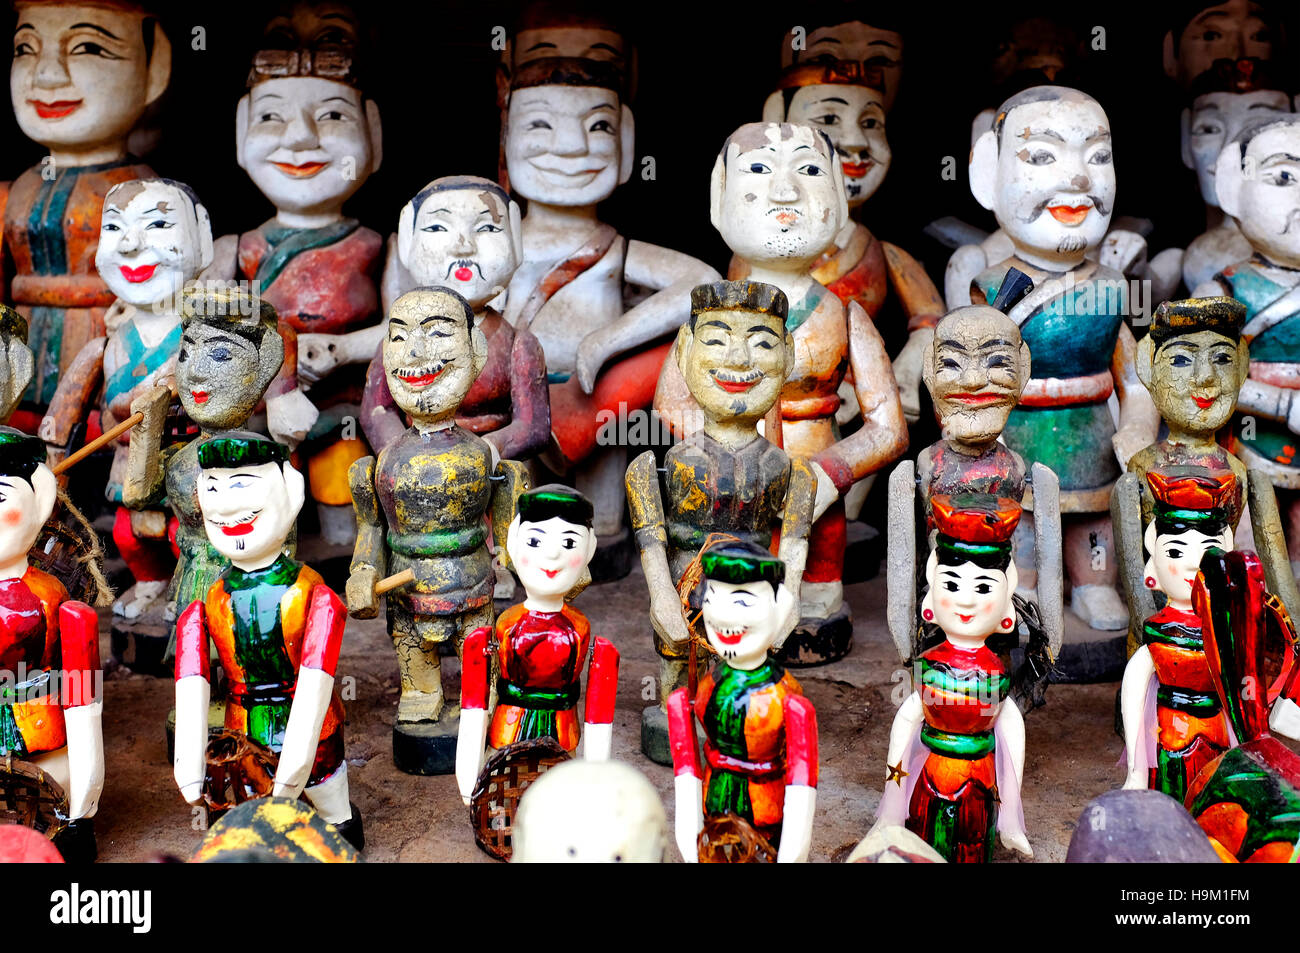 Vietnamese water puppets on display - Stock Image